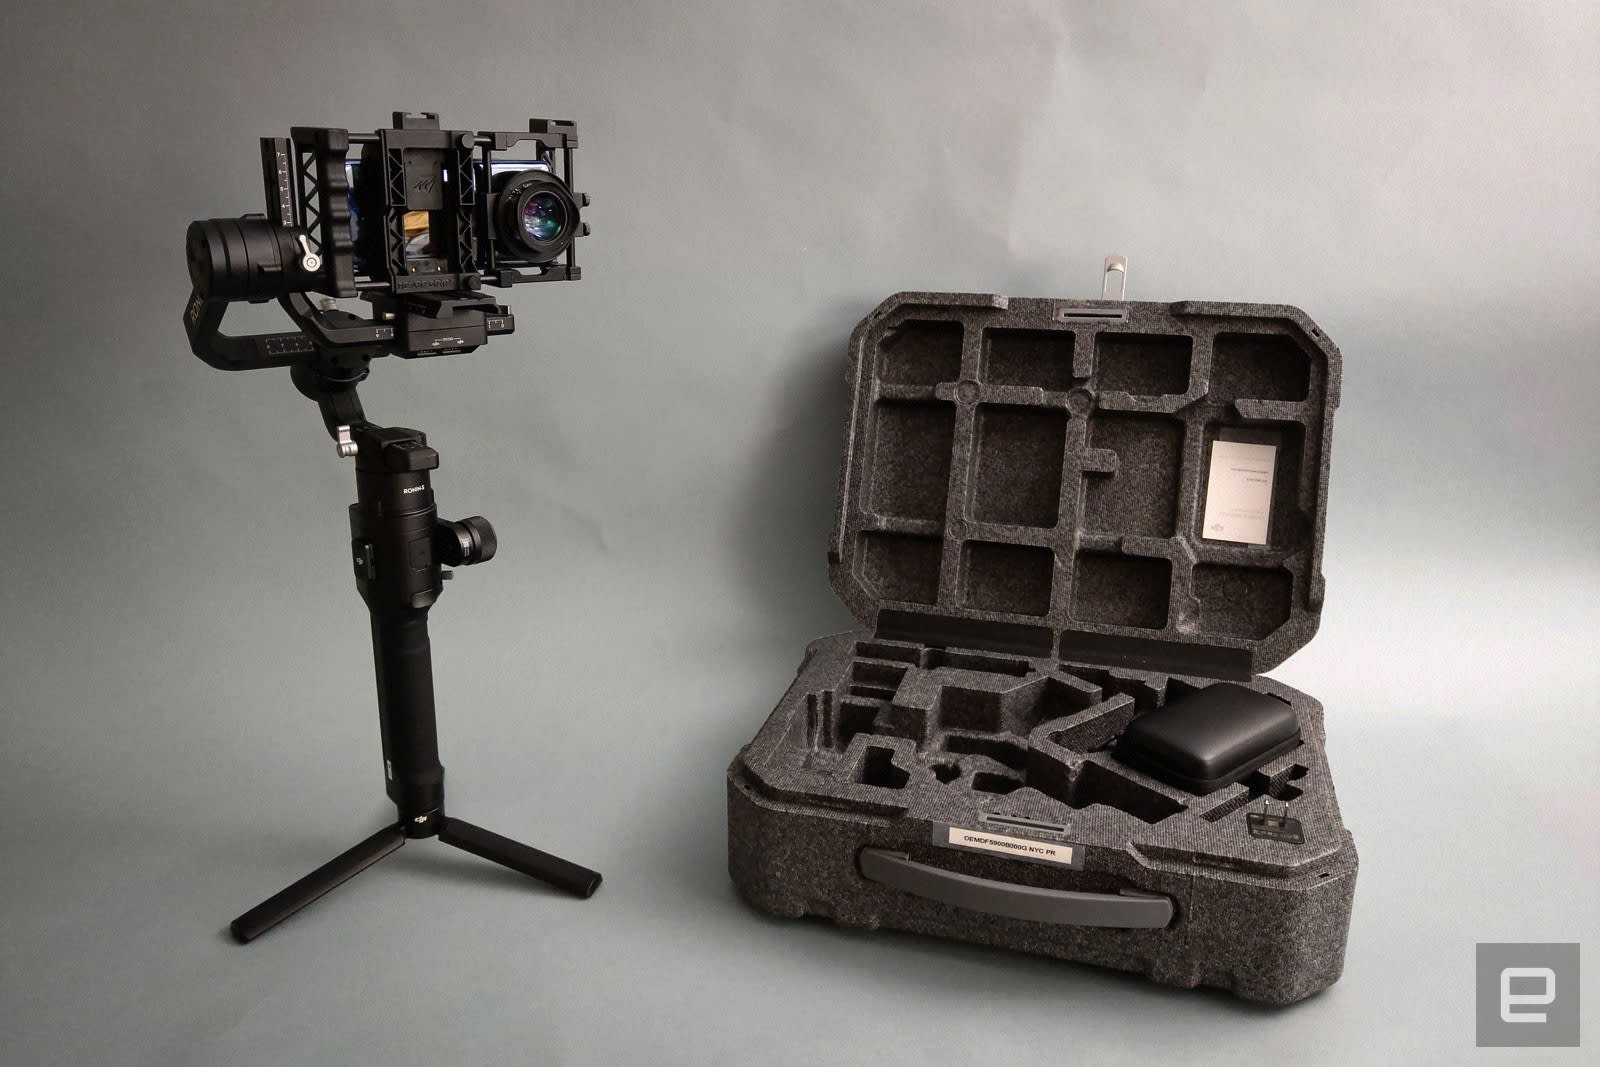 The new Ronin S gimbal is essential YouTube gear